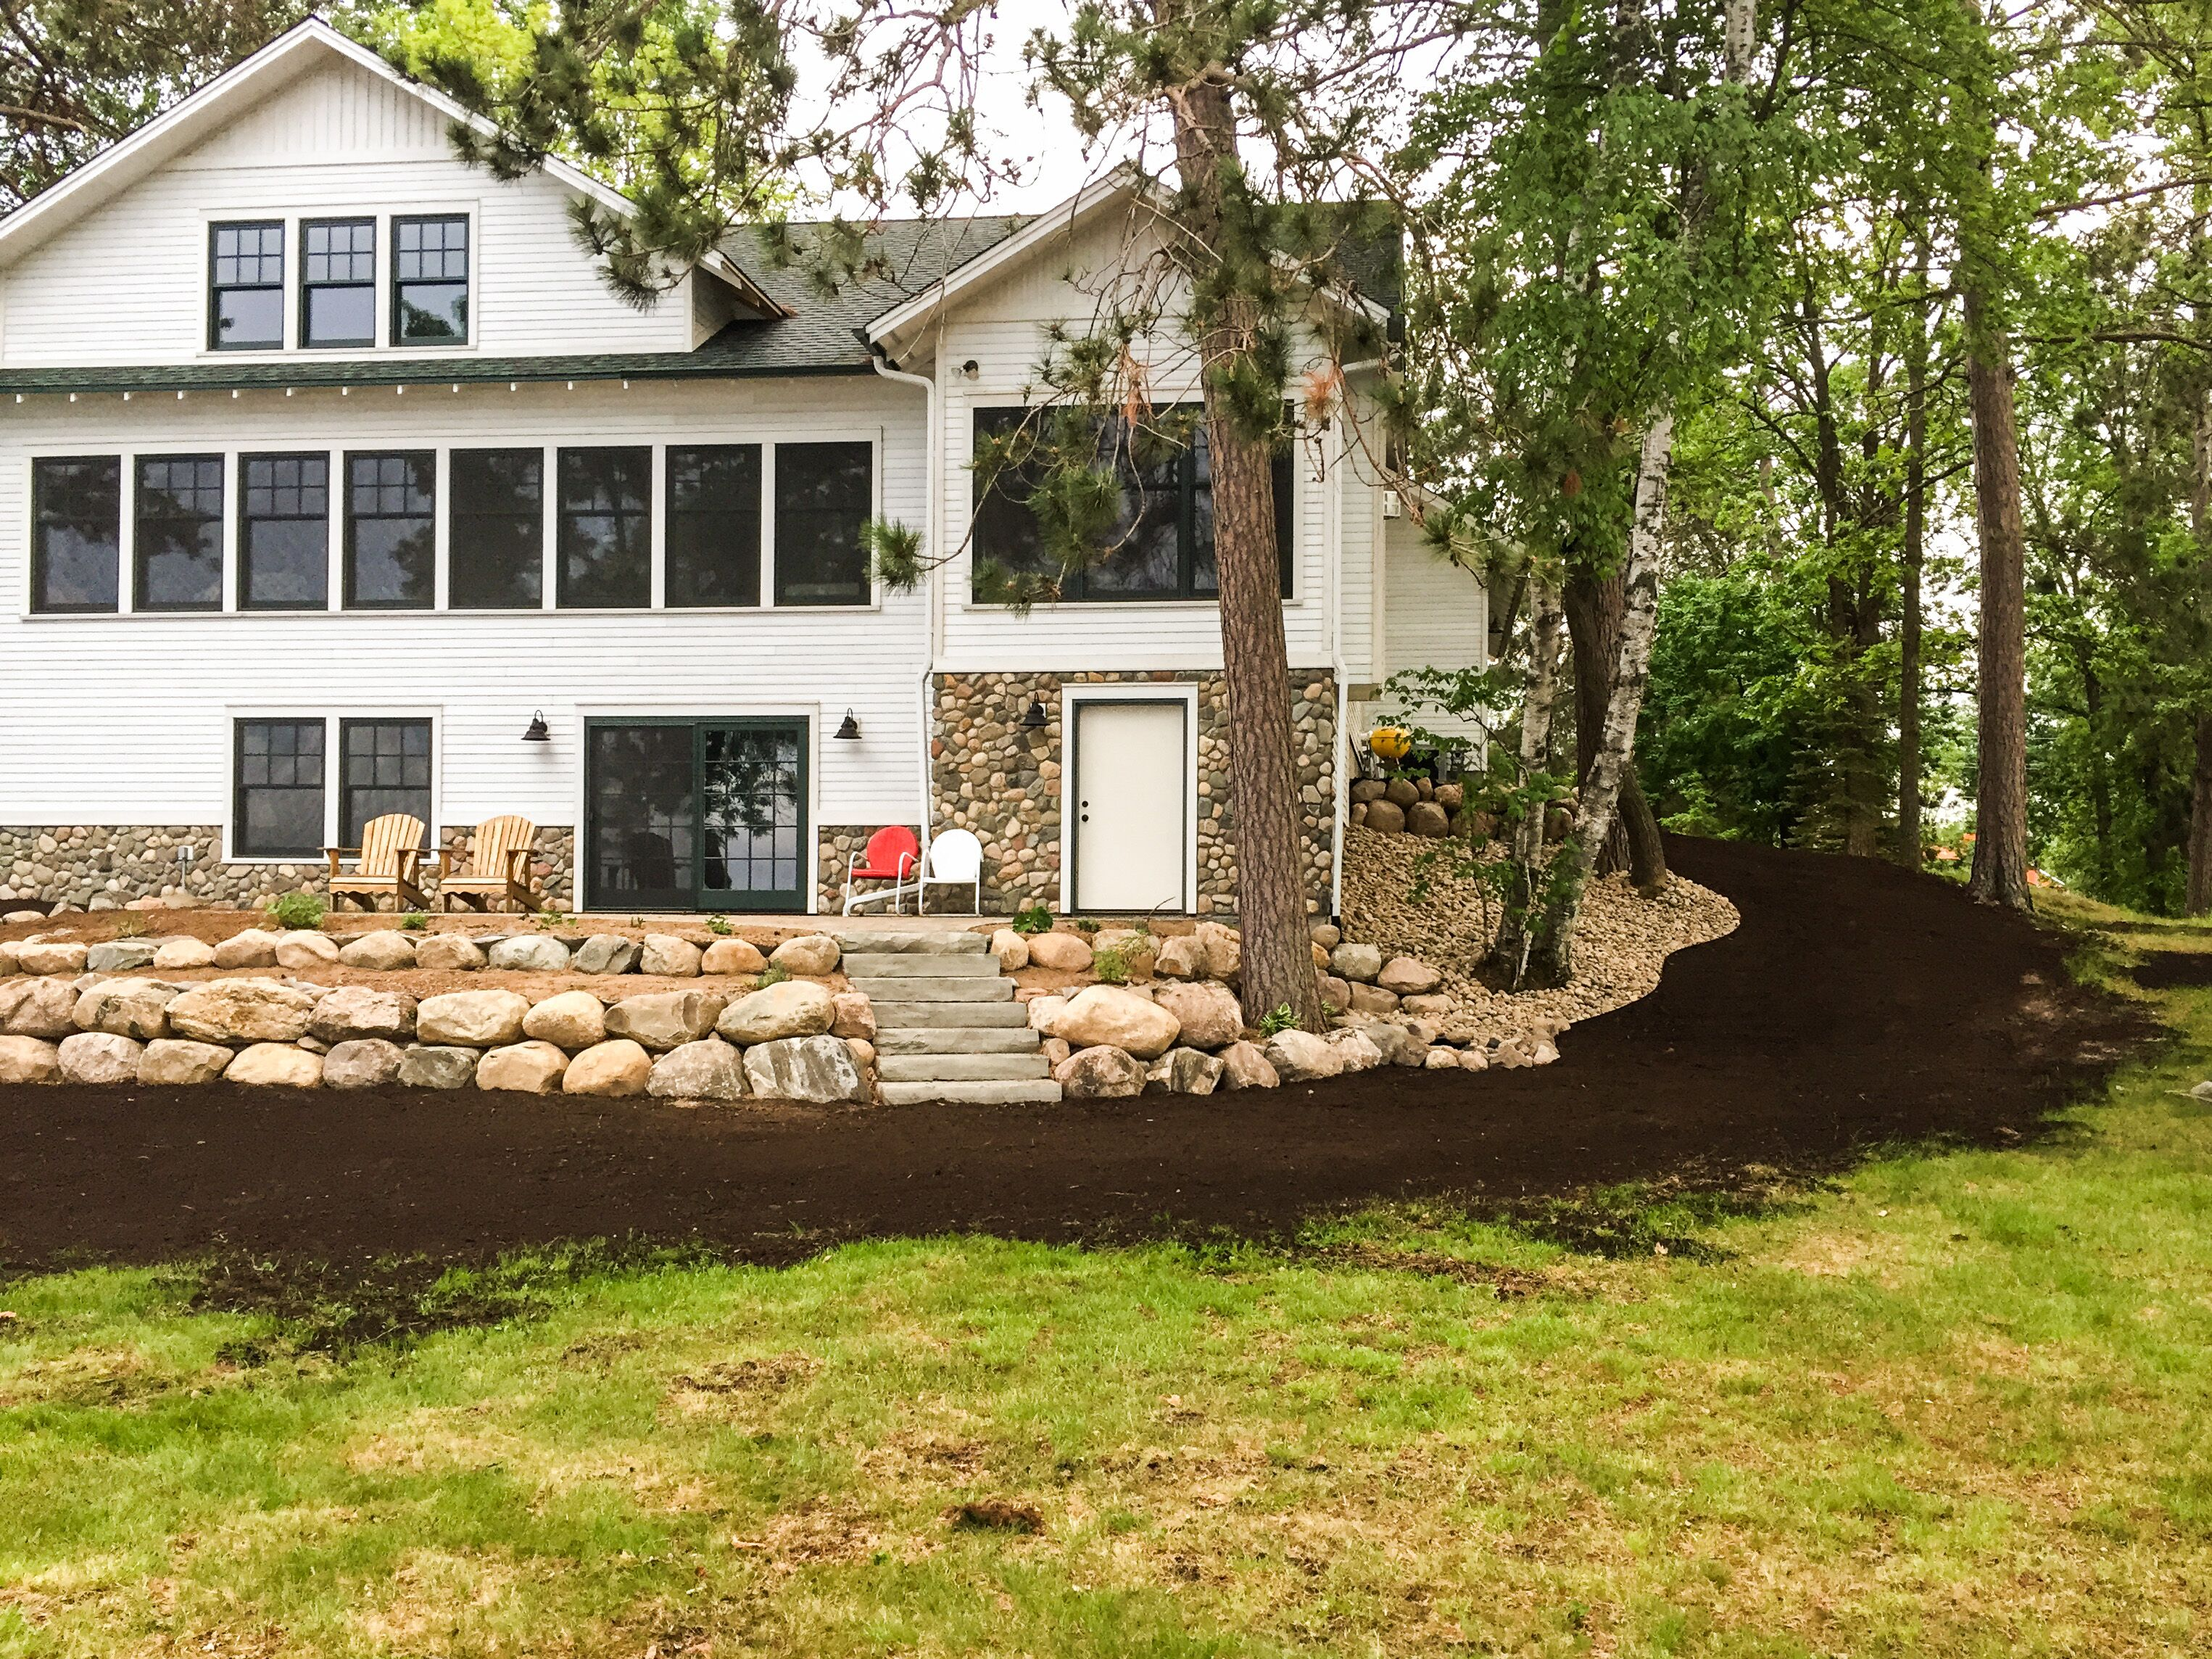 landscaping with boulder wall and paver patio